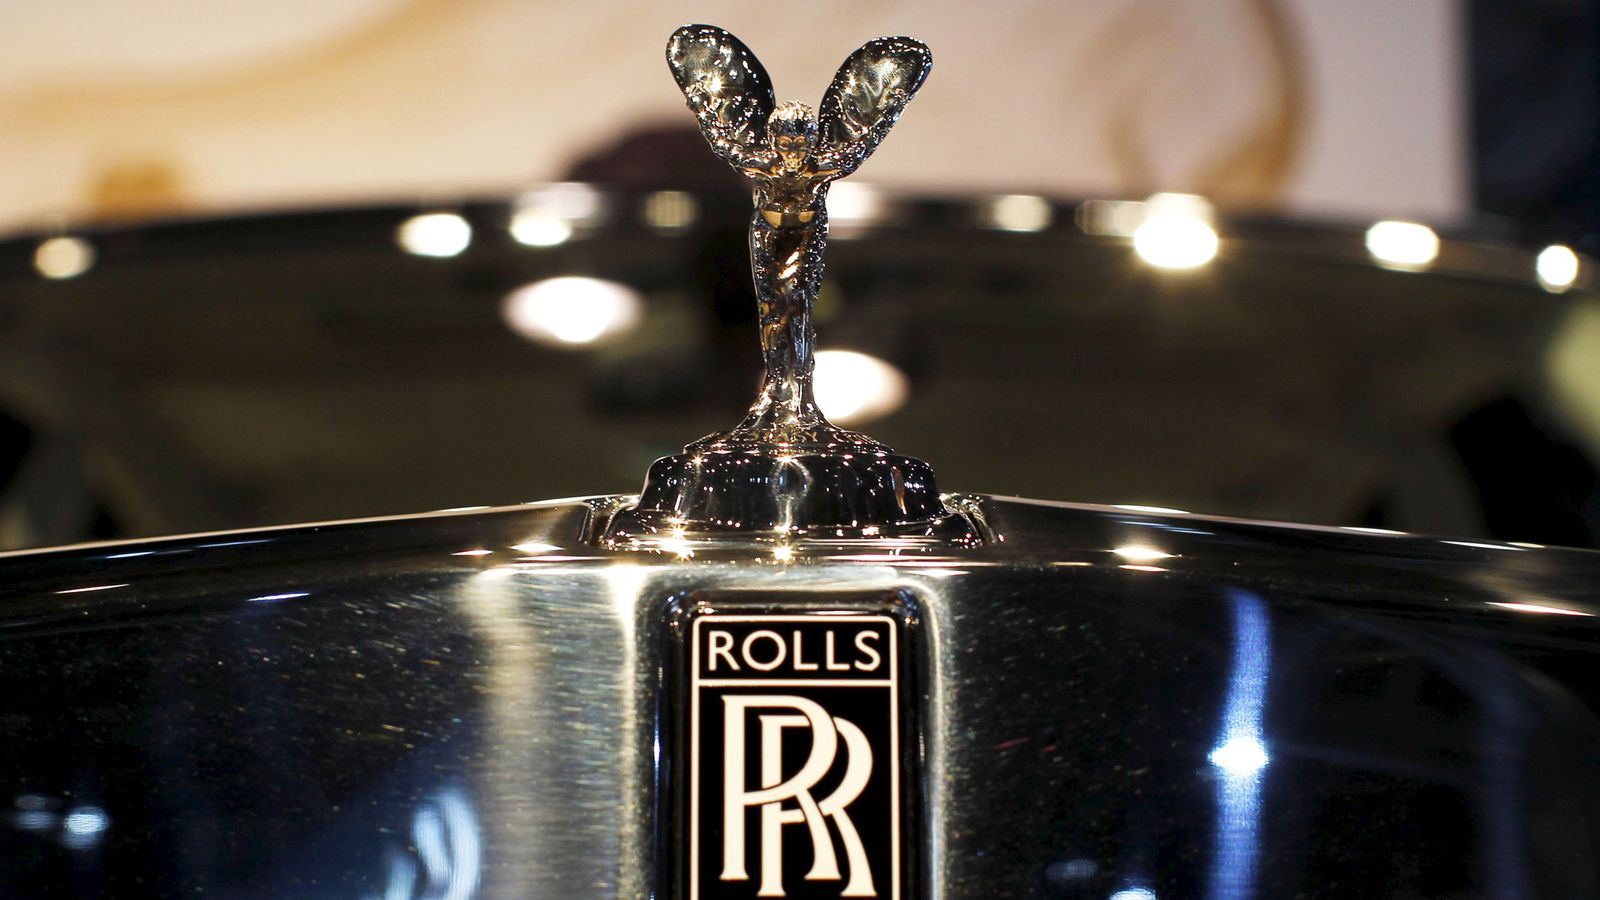 Cars Symbol Wallpaper Bribery Scandal Can Now Be Put Behind Rolls Royce